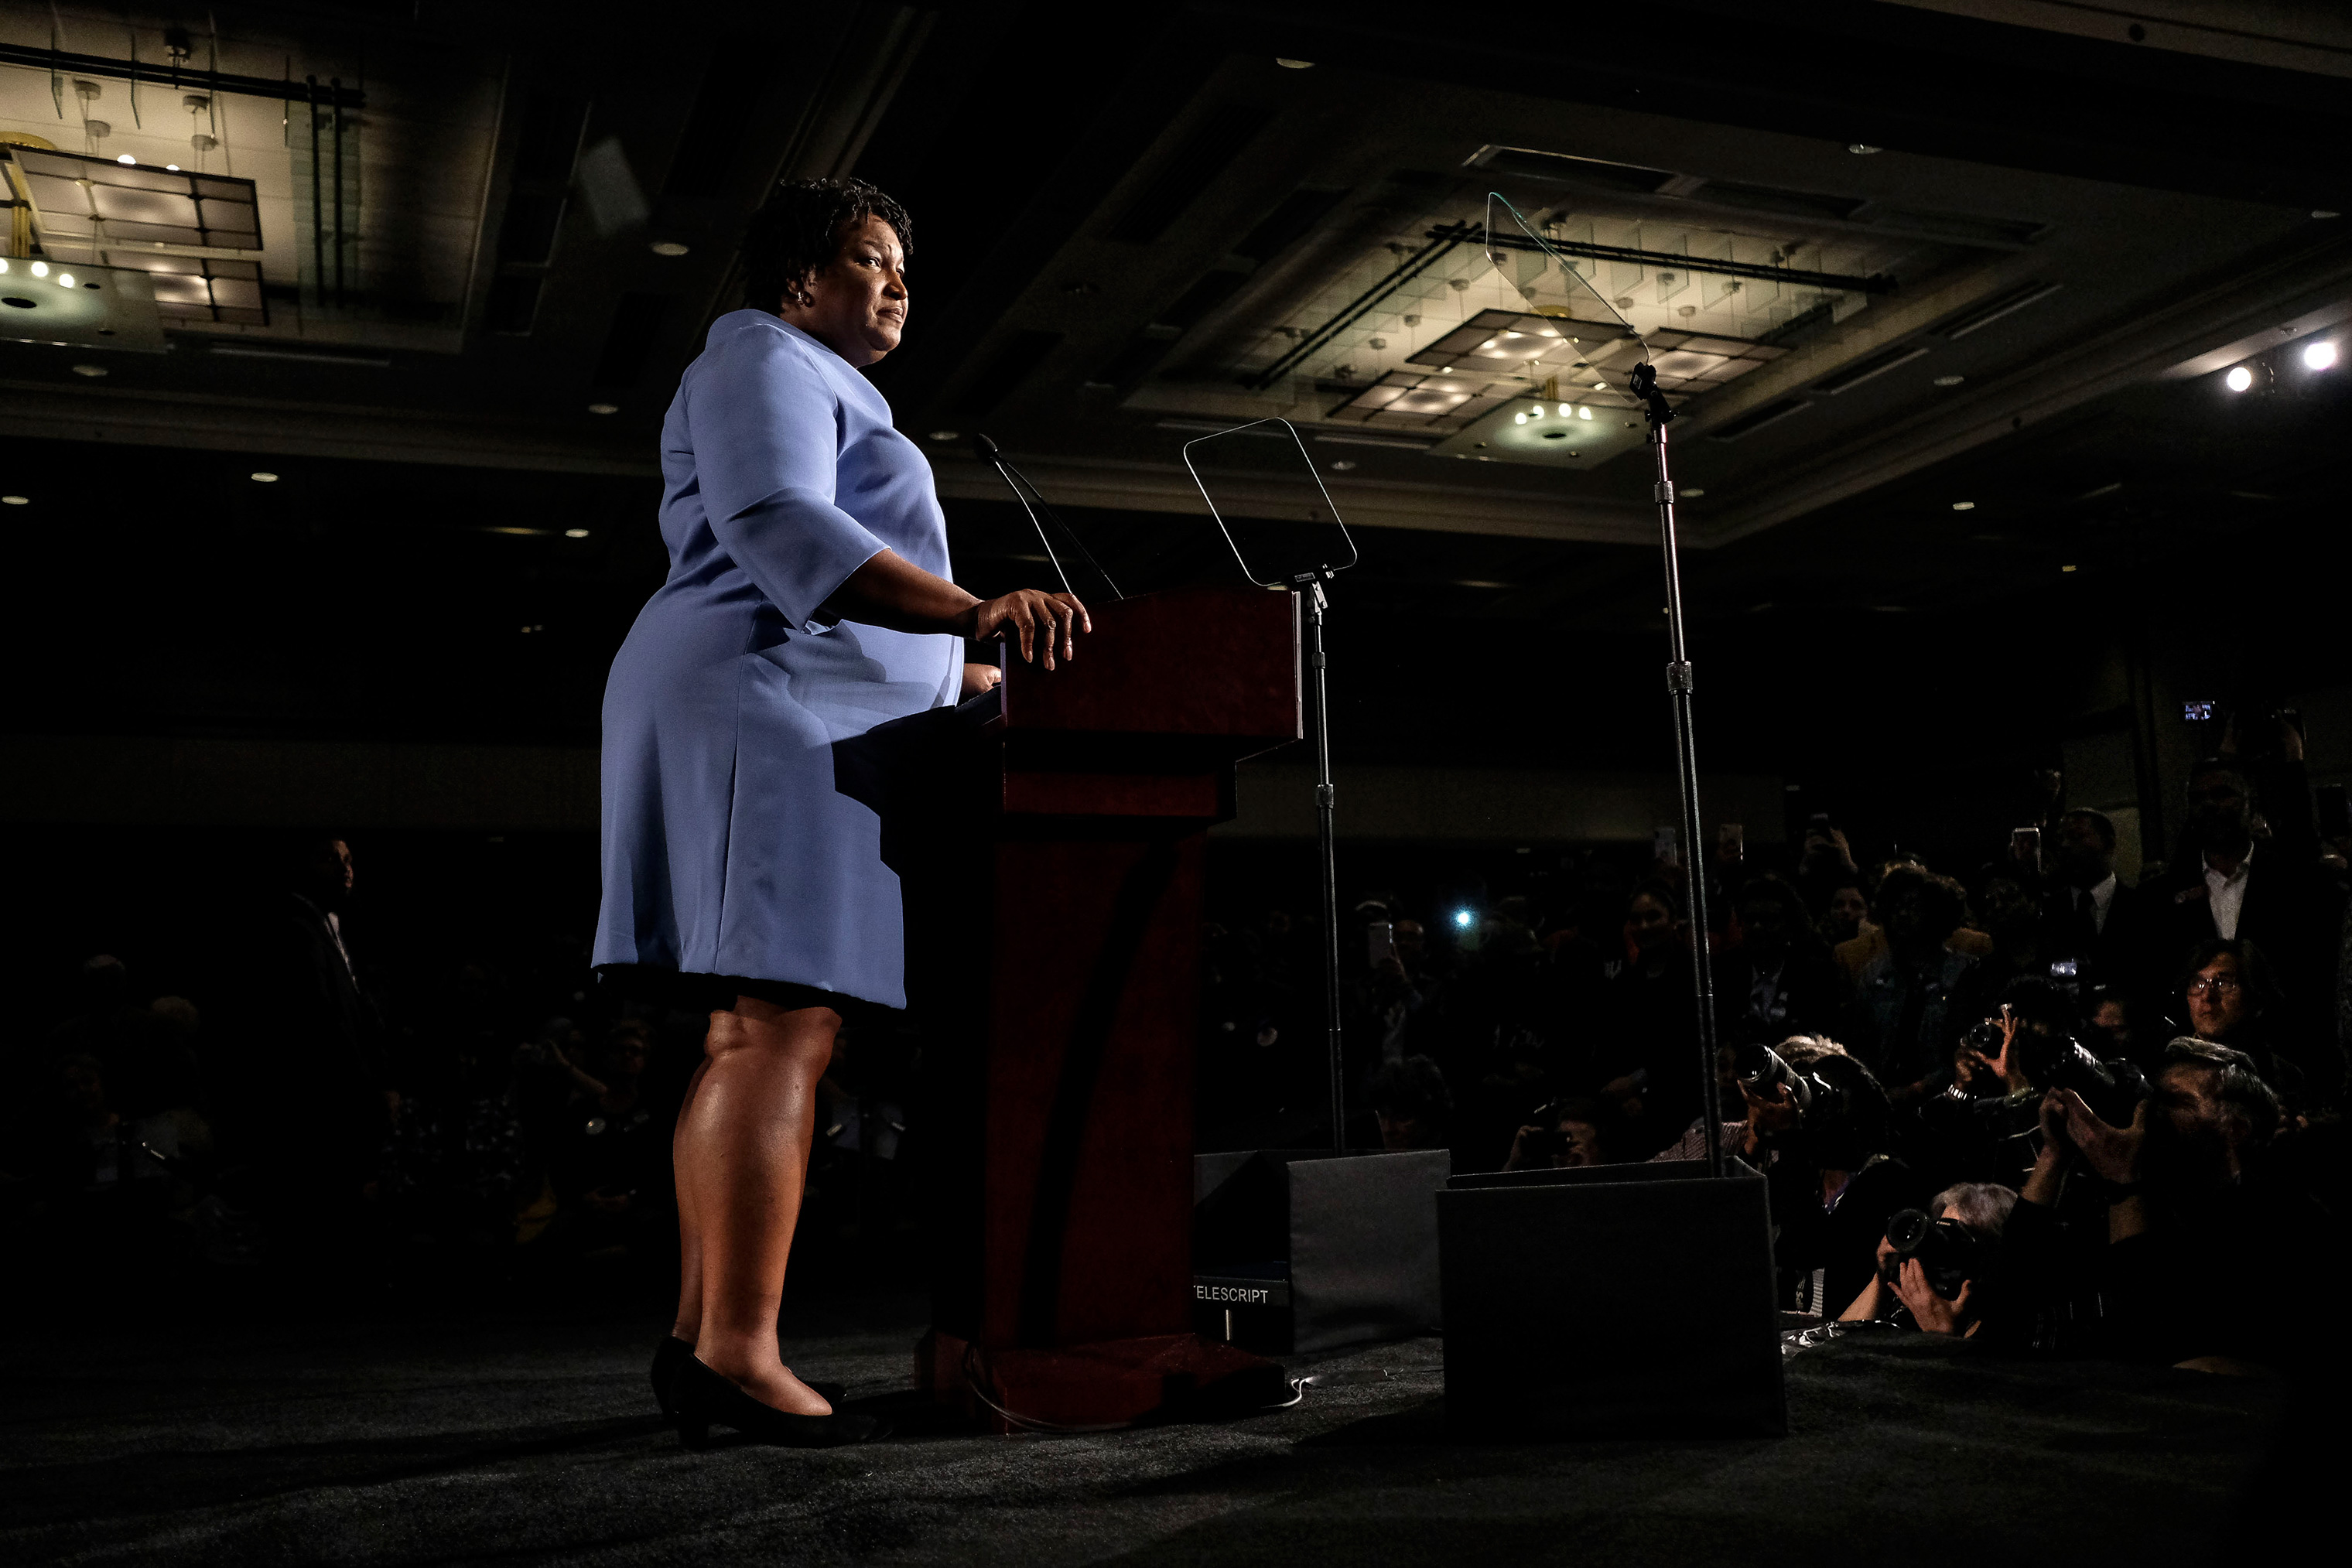 Democratic gubernatorial candidate Stacey Abrams speaks during the election night watch party at the Hyatt Regency hotel in Atlanta, Ga.